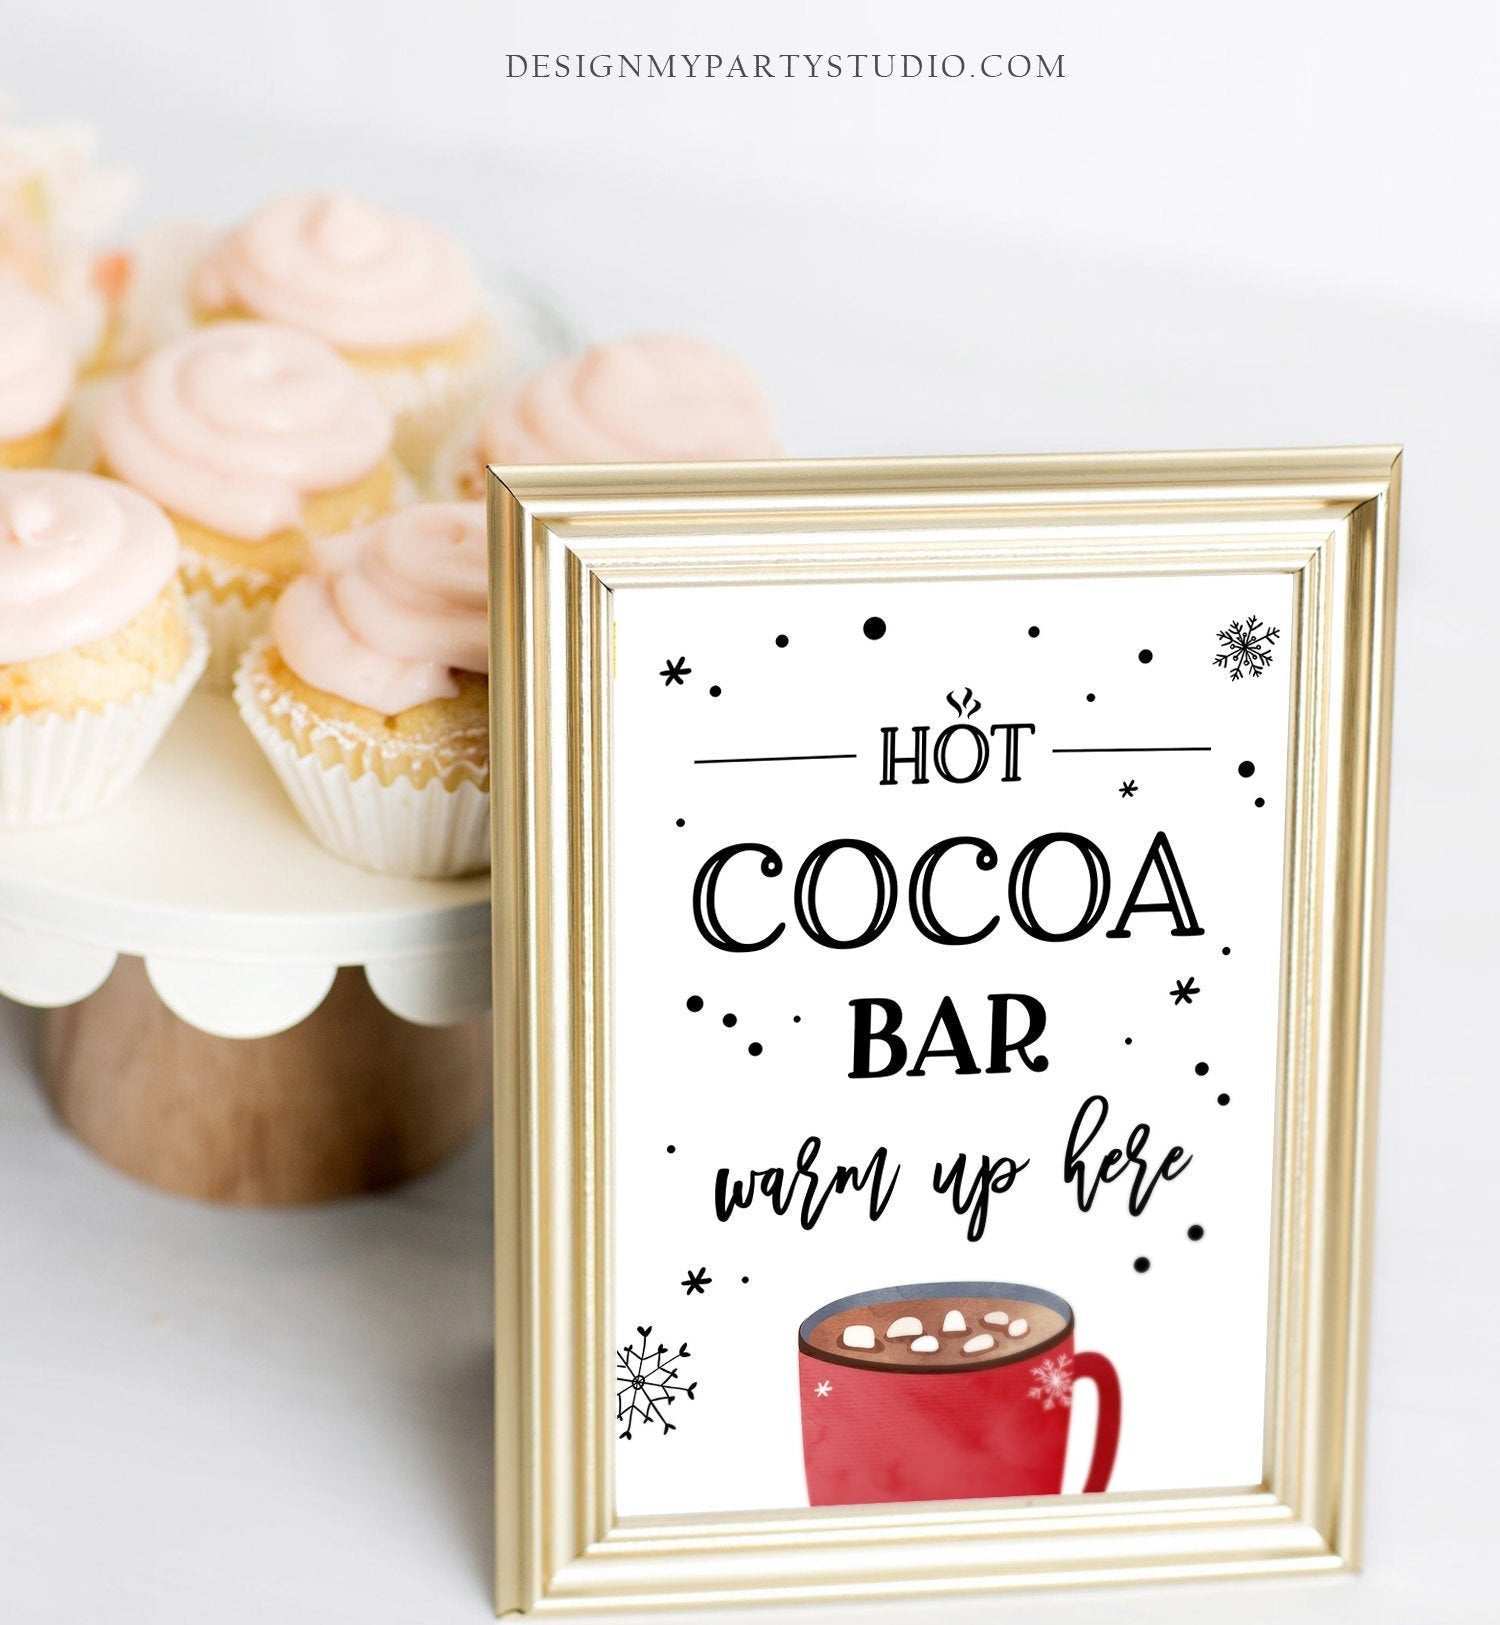 Hot Cocoa Bar Sign Printable Hot Chocolate Bar Table Sign Cookies Cocoa Birthday Winter Party Decor Farmhouse Xmas Digital PRINTABLE 0262